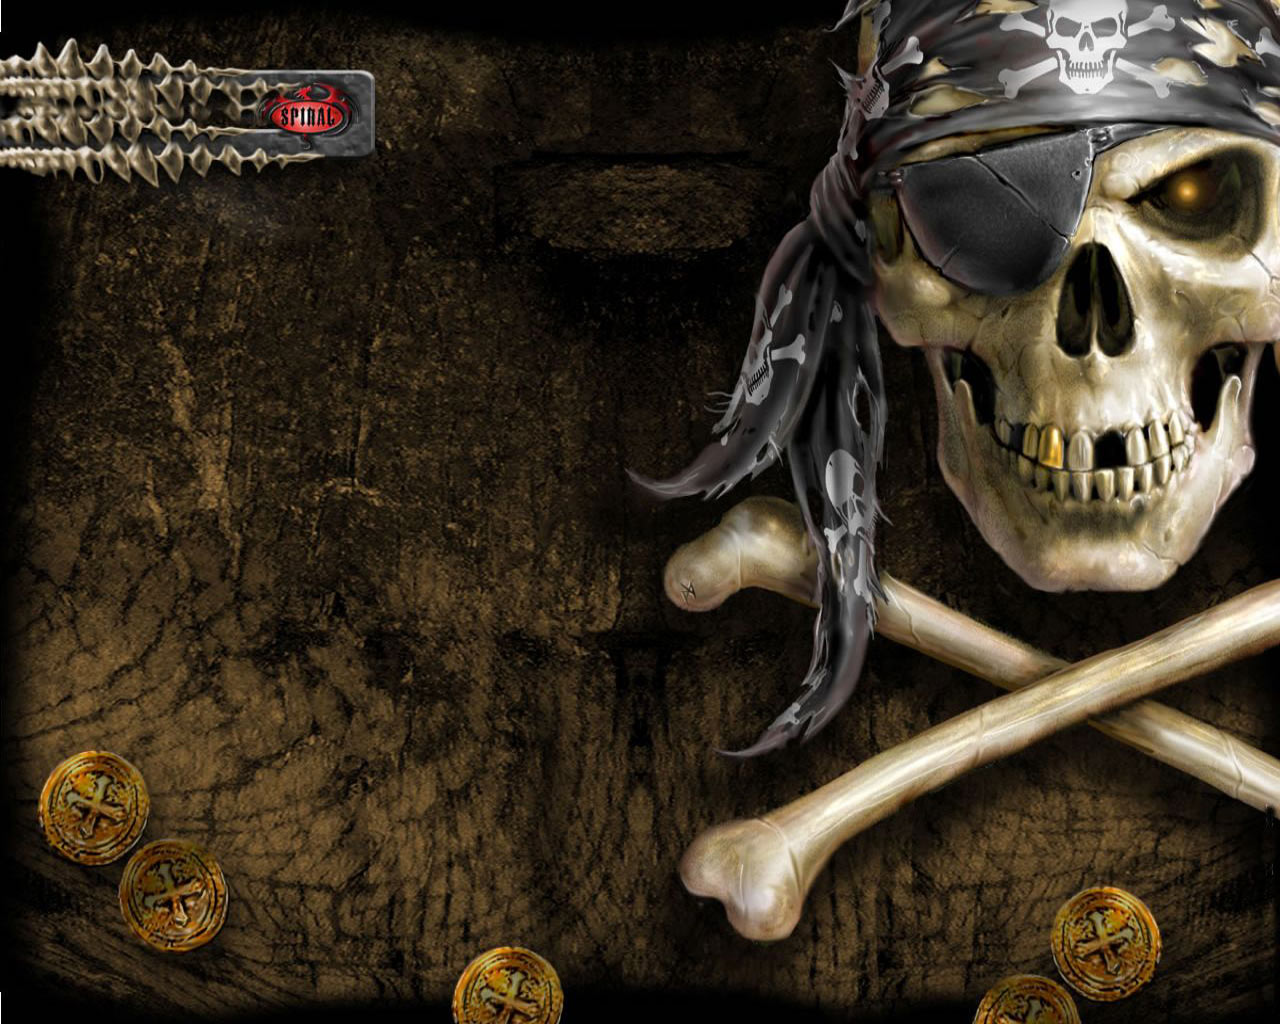 pirates of the caribbean wallpapers 1080p